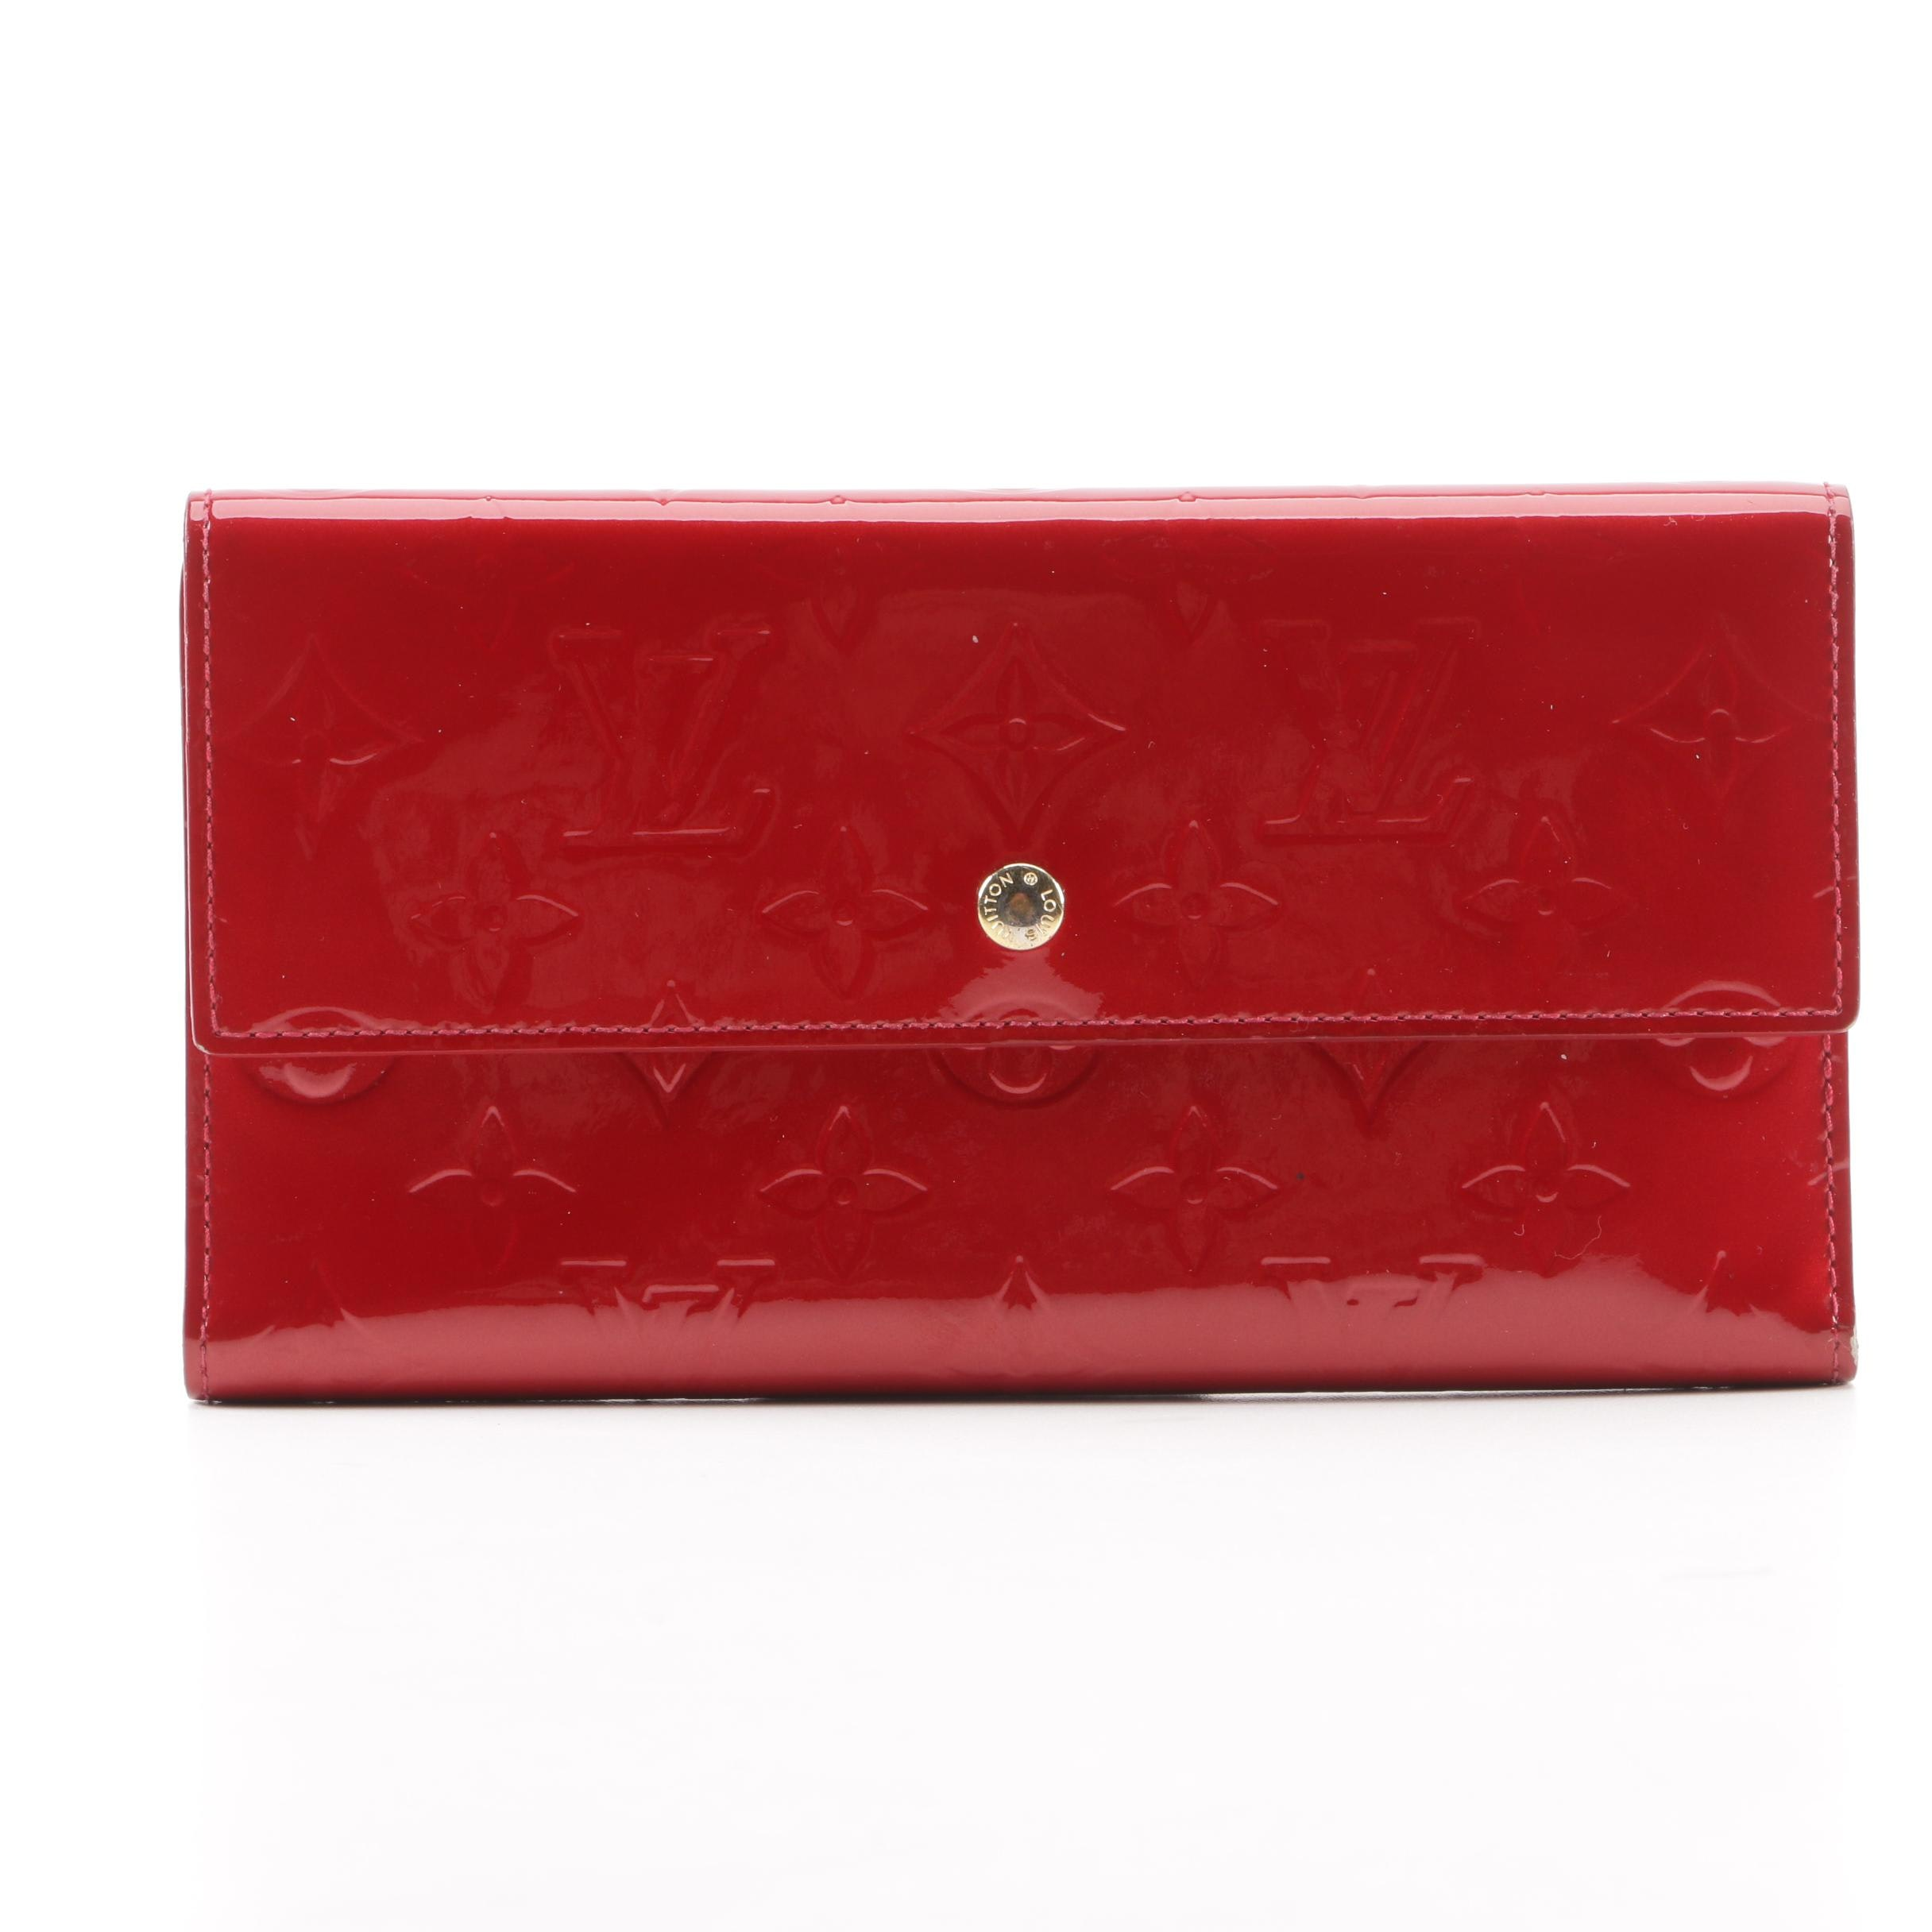 2006 Louis Vuitton Paris Red Vernis Leather Wallet